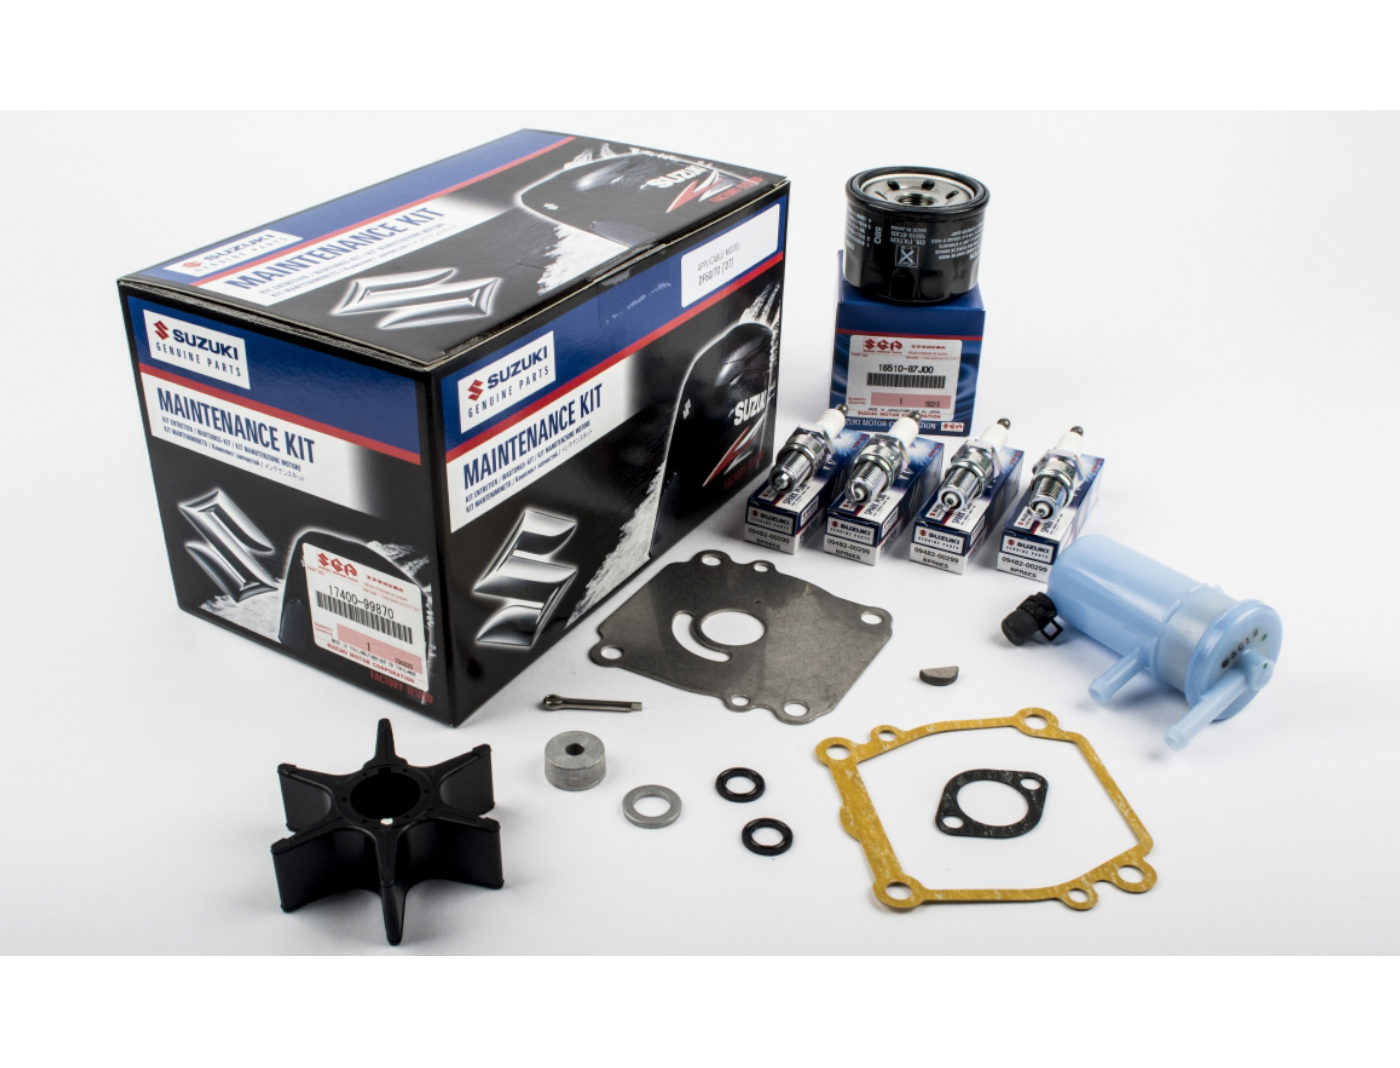 Suzuki DF60/70 Marine Maintenance Service Kit ('07)